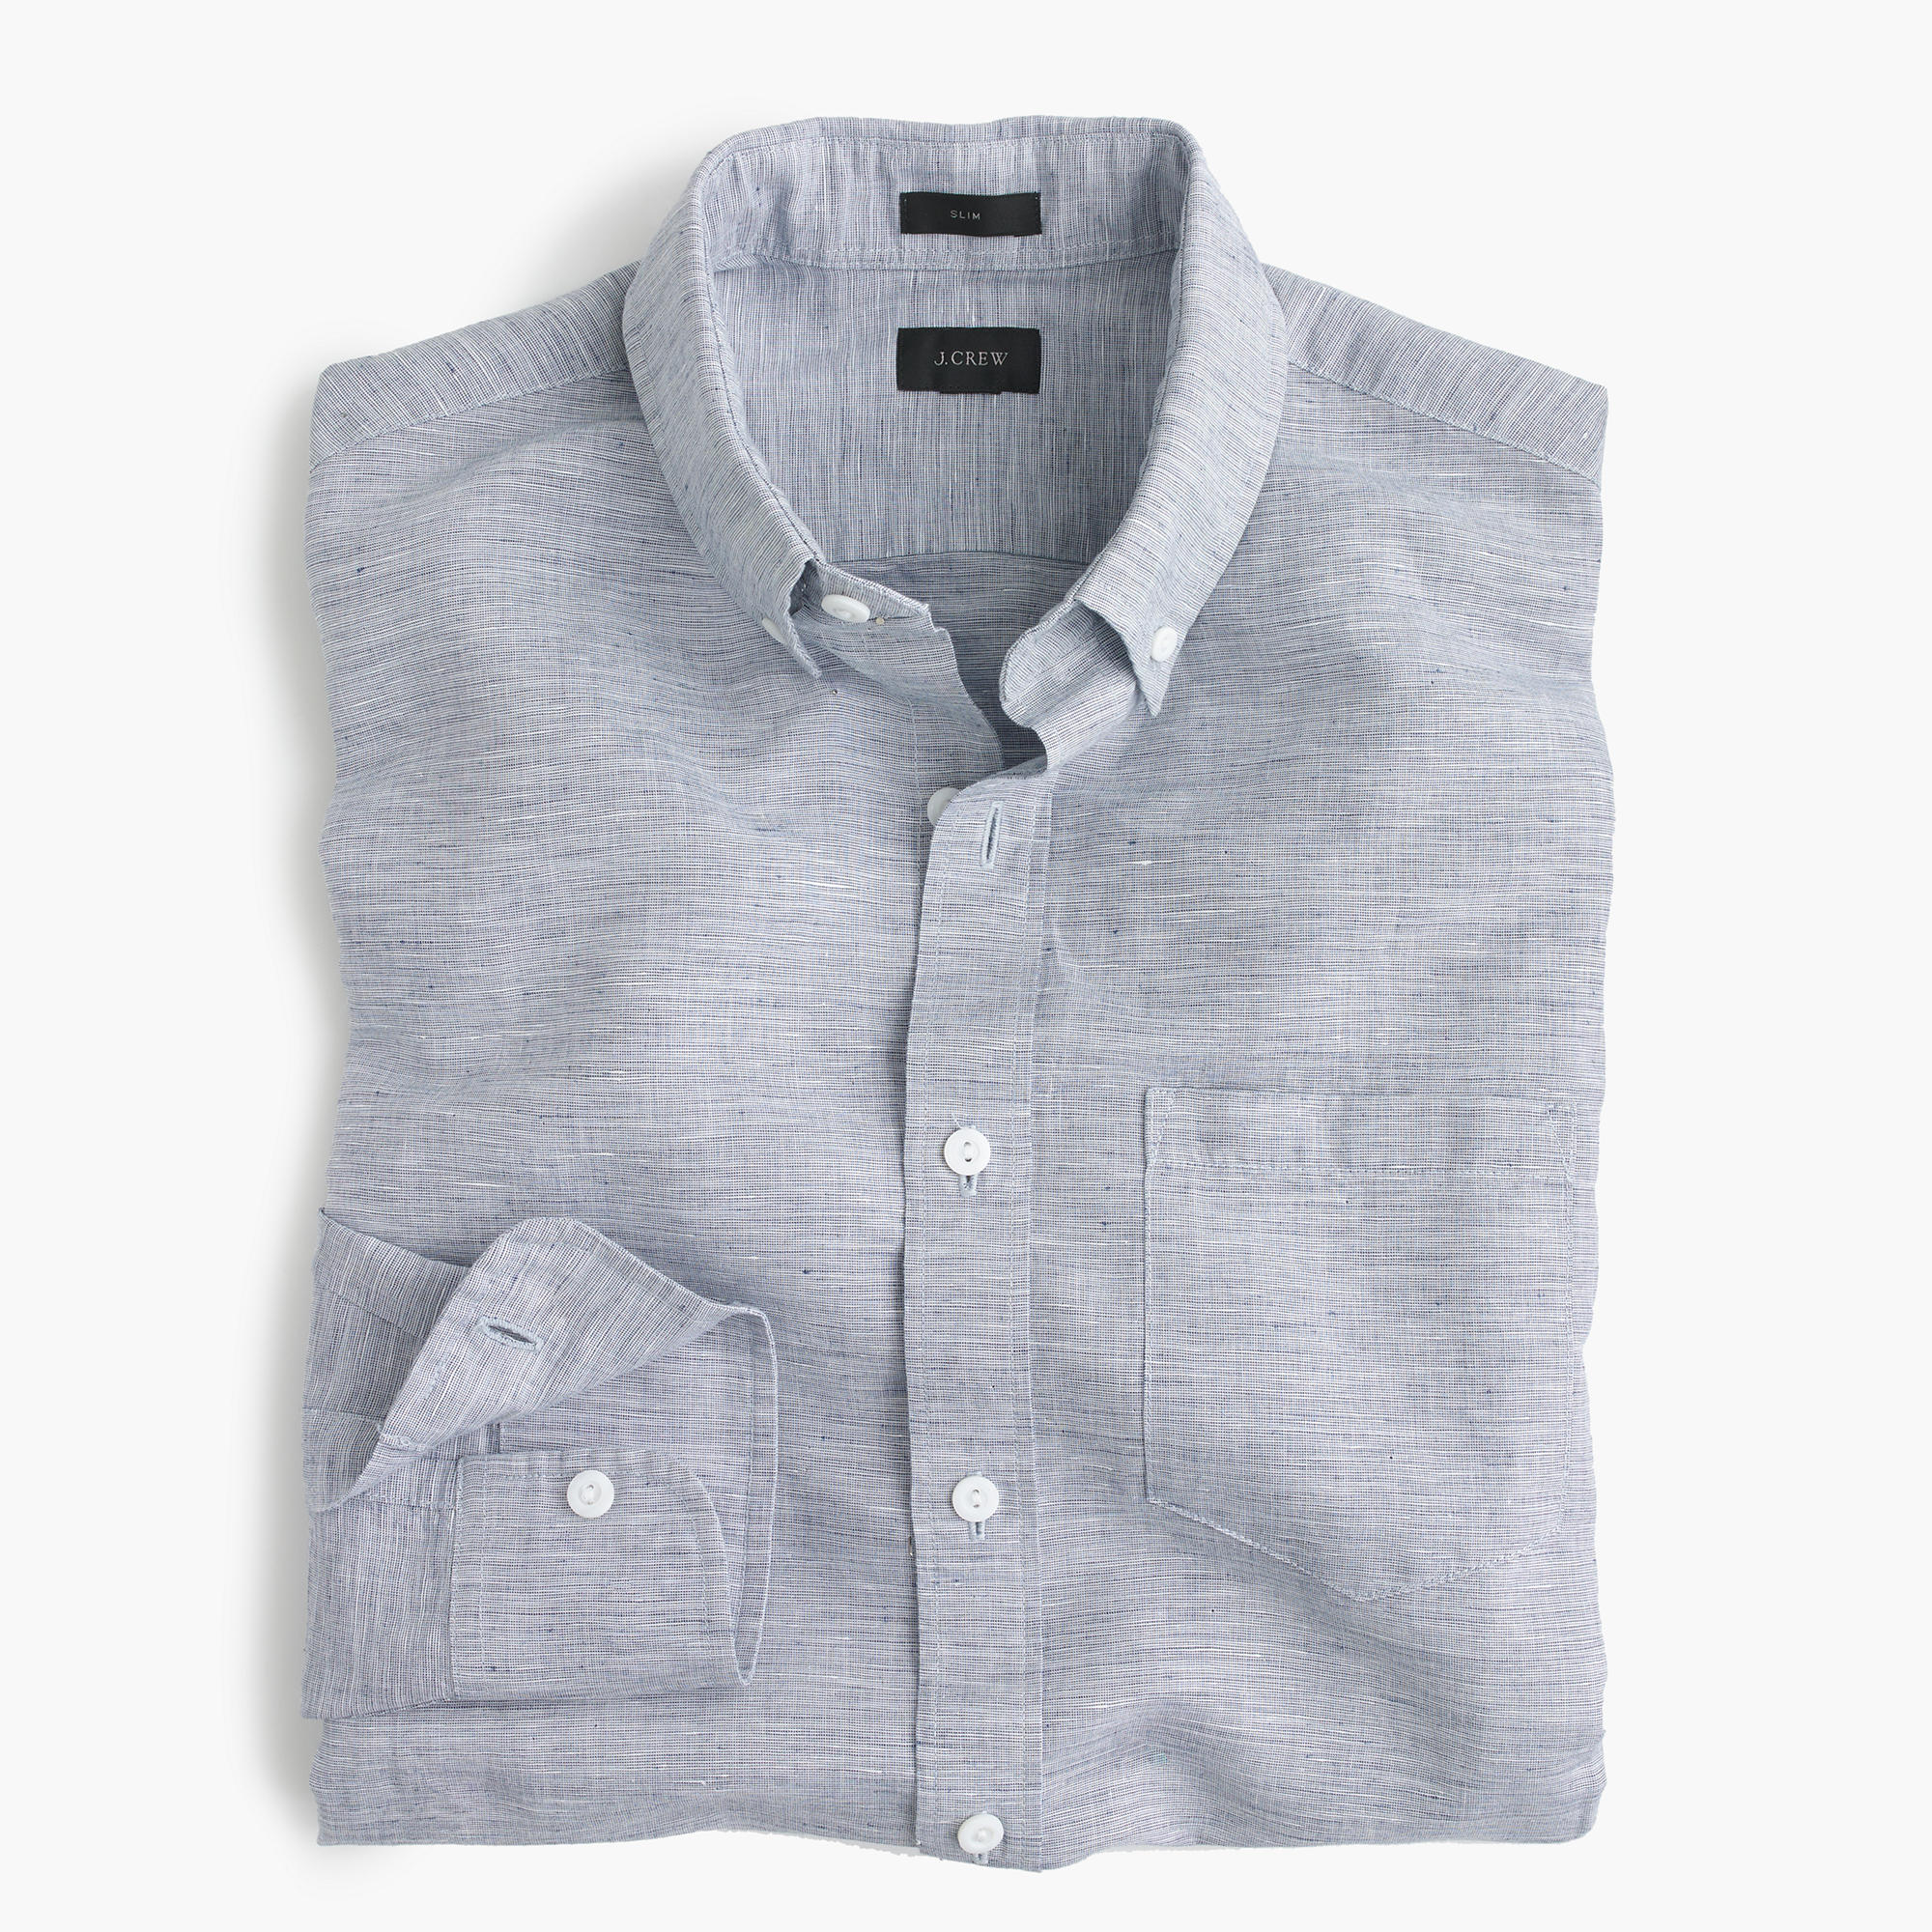 Find great deals on eBay for mens linen cotton shirt. Shop with confidence.